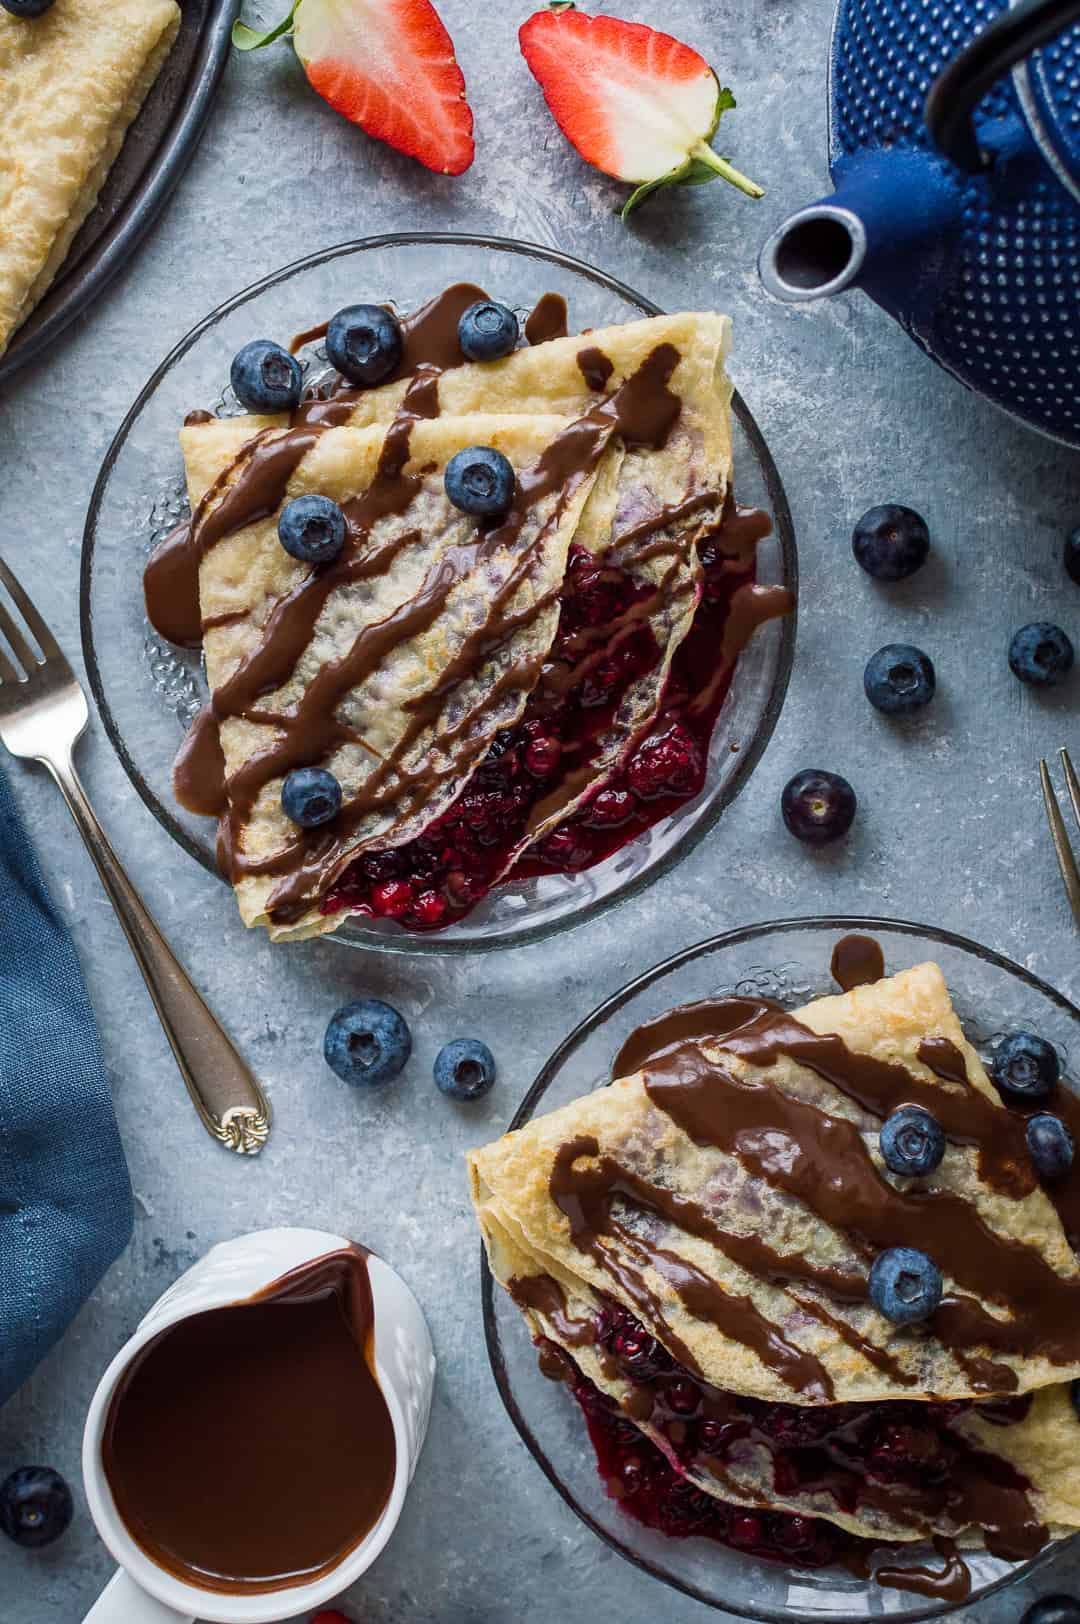 Egg and dairy free pancakes filled with berry compote and drizzled with chocolate sauce and a scattering of blueberries